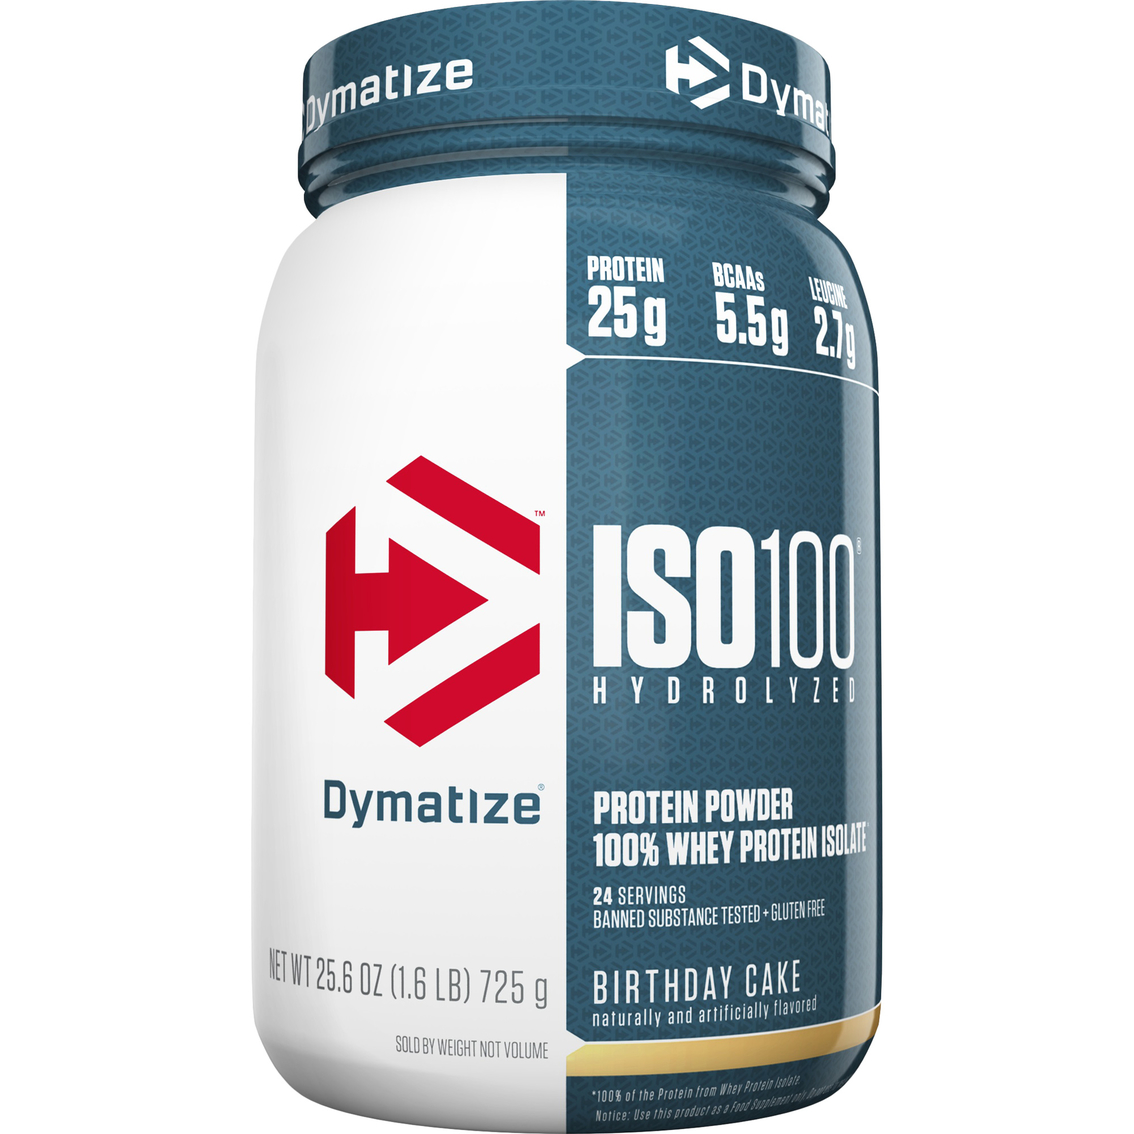 Dymatize ISO 100 Hydrolyzed Whey Protein Birthday Cake